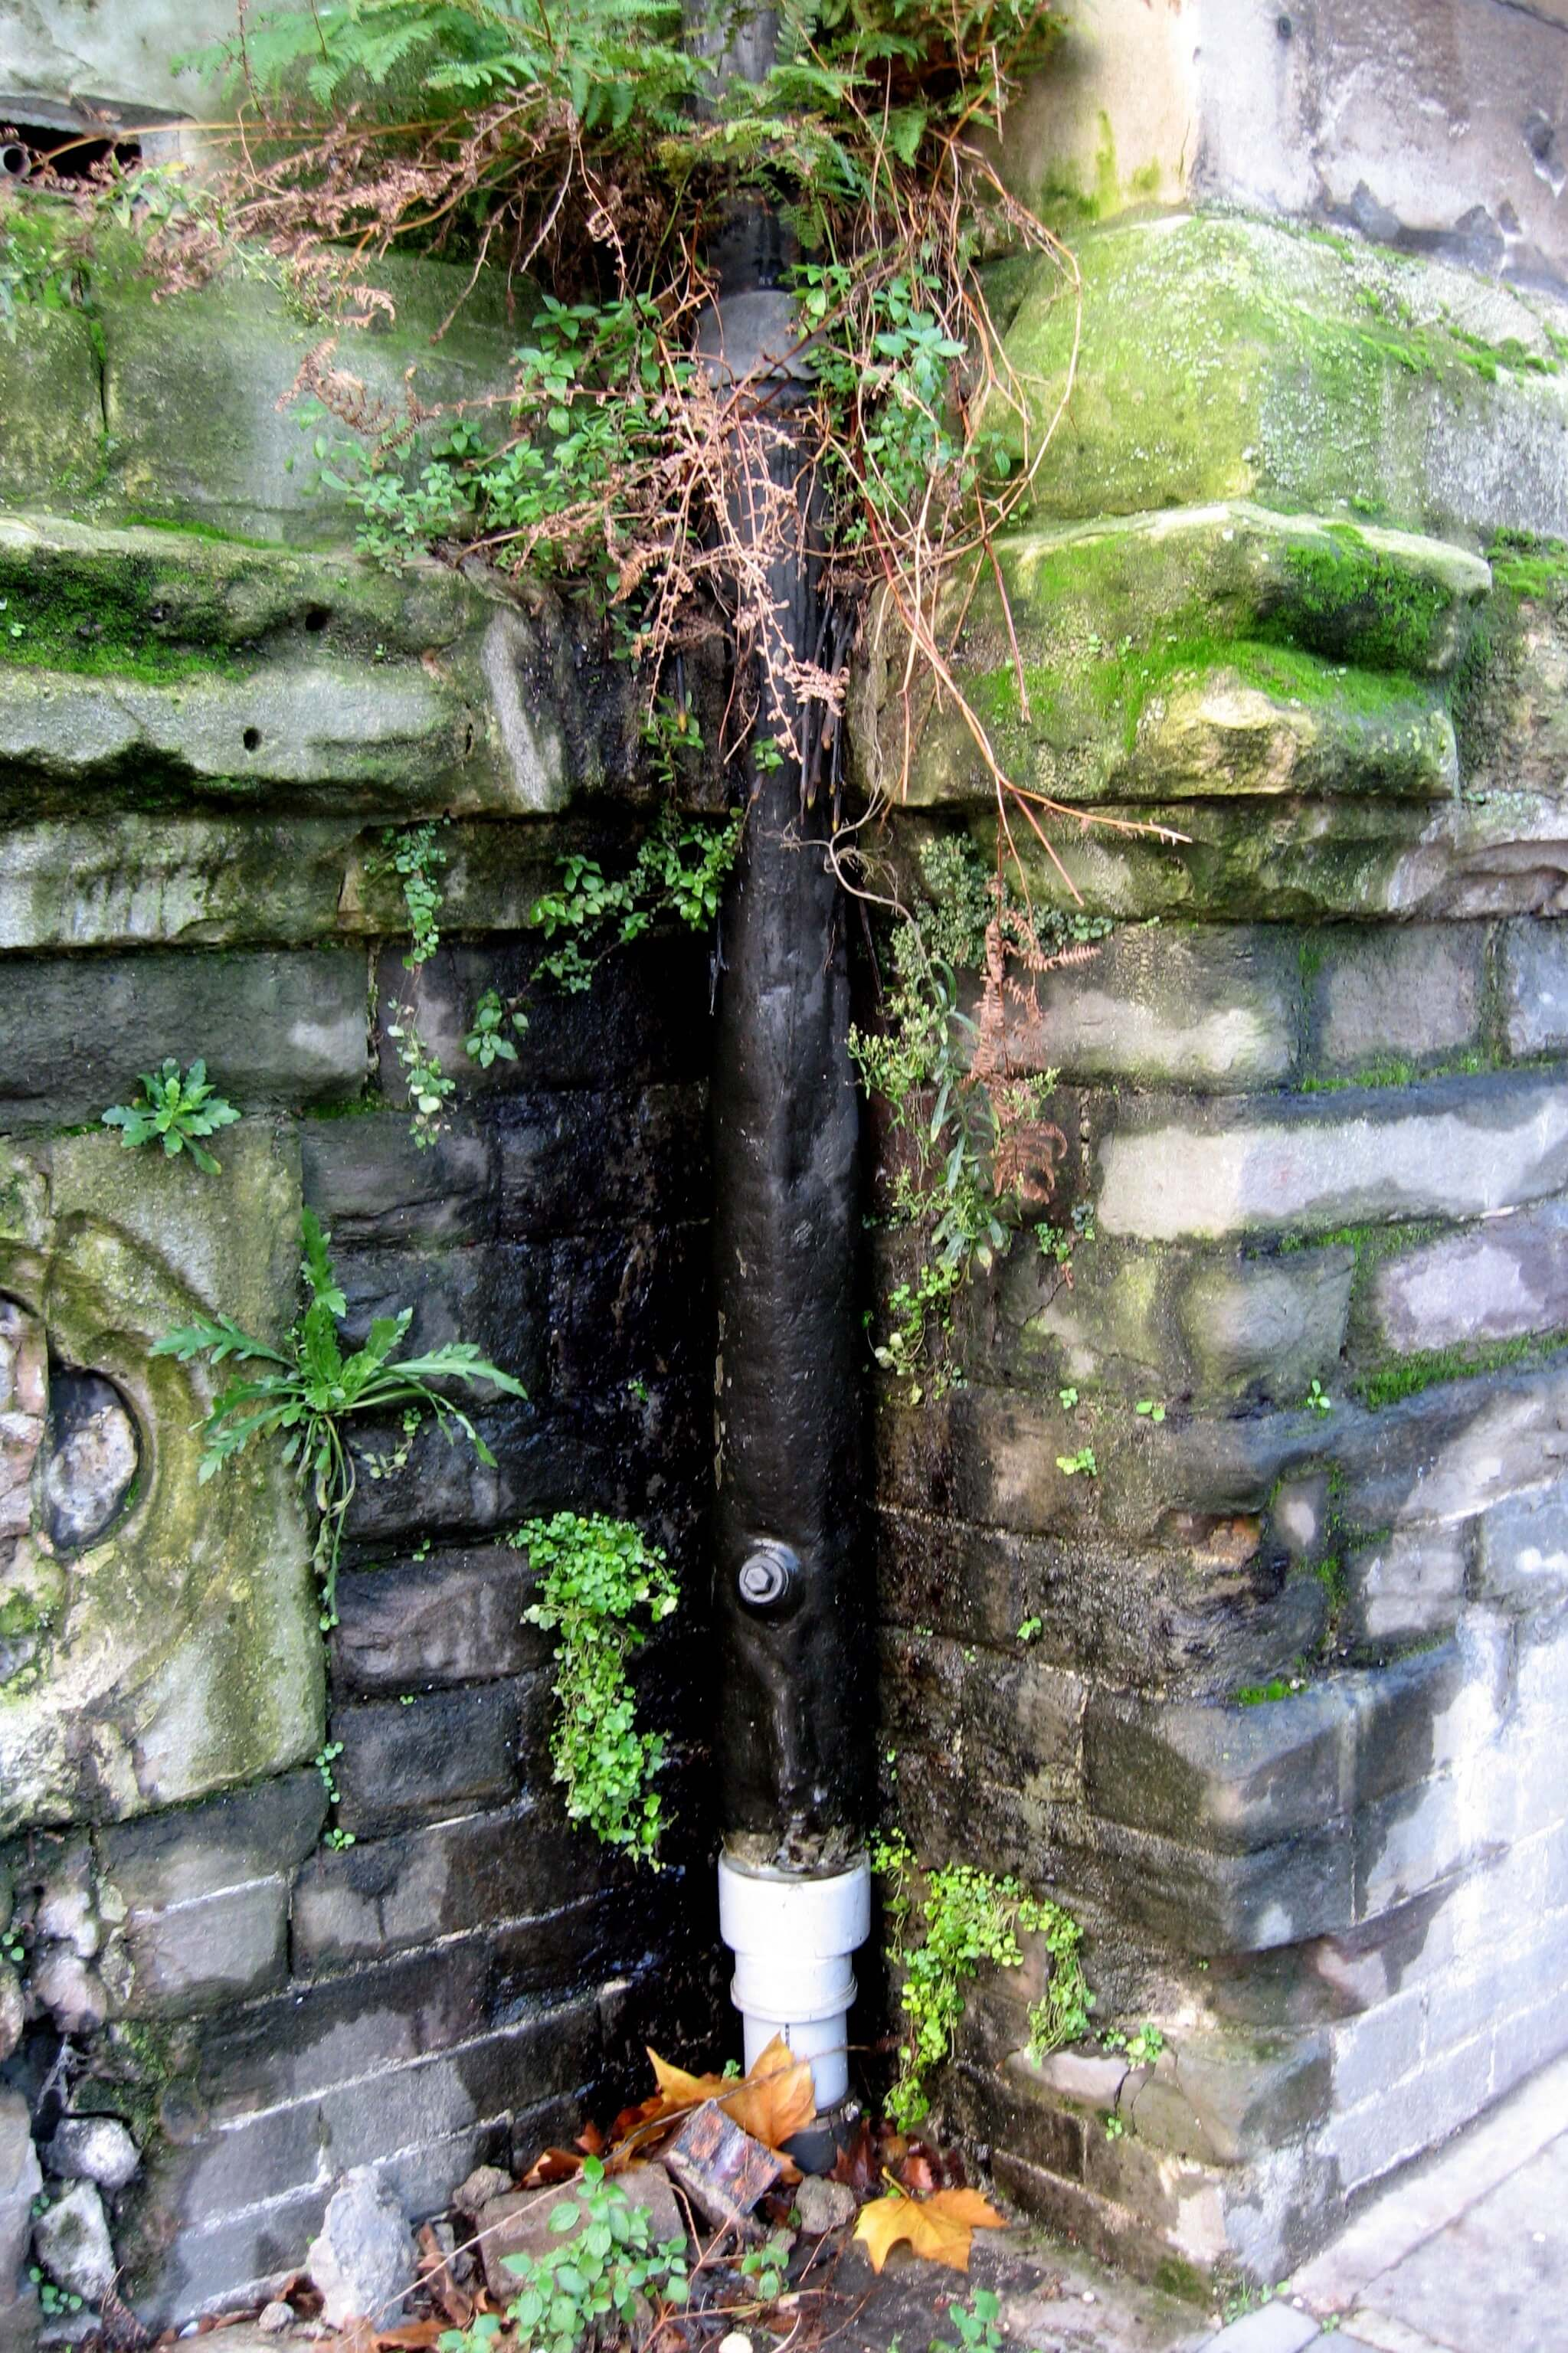 Blocked downpipe causing damp and vegetation to grow